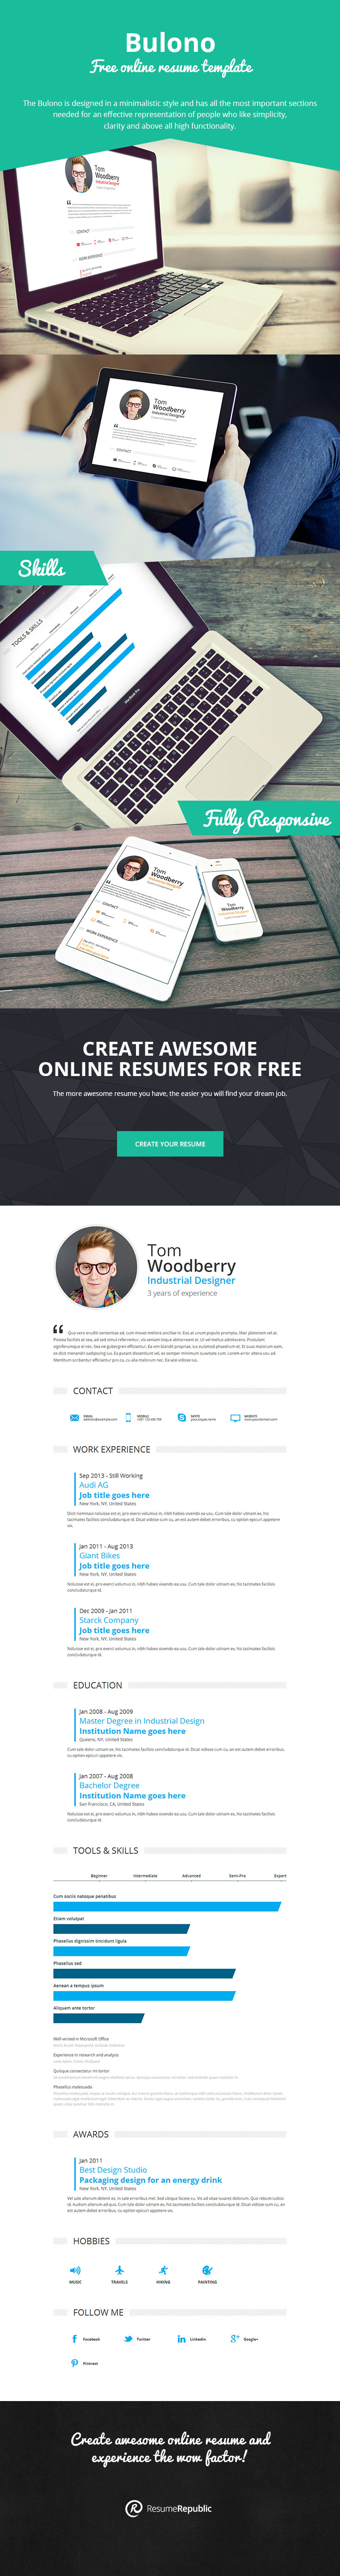 Work Experience  Resume Template Bulono    Online